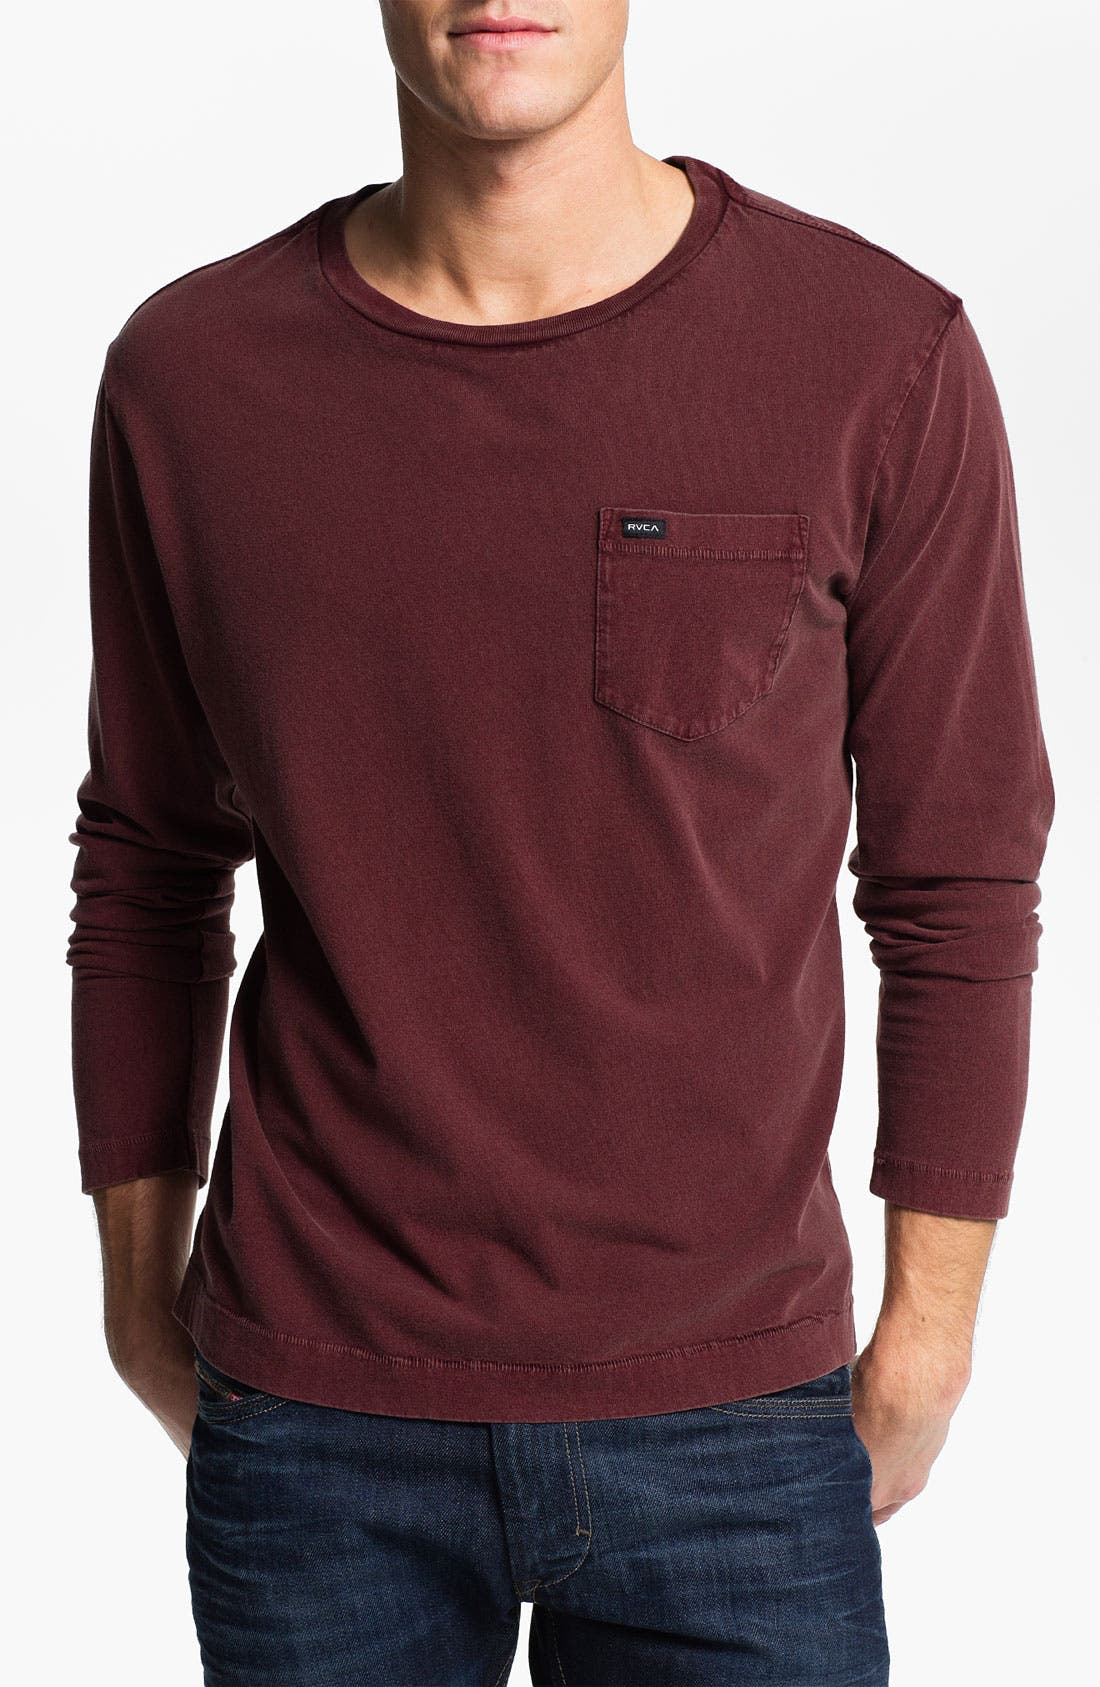 Alternate Image 1 Selected - RVCA 'Solstice' Pigment Dyed Long Sleeve T-Shirt